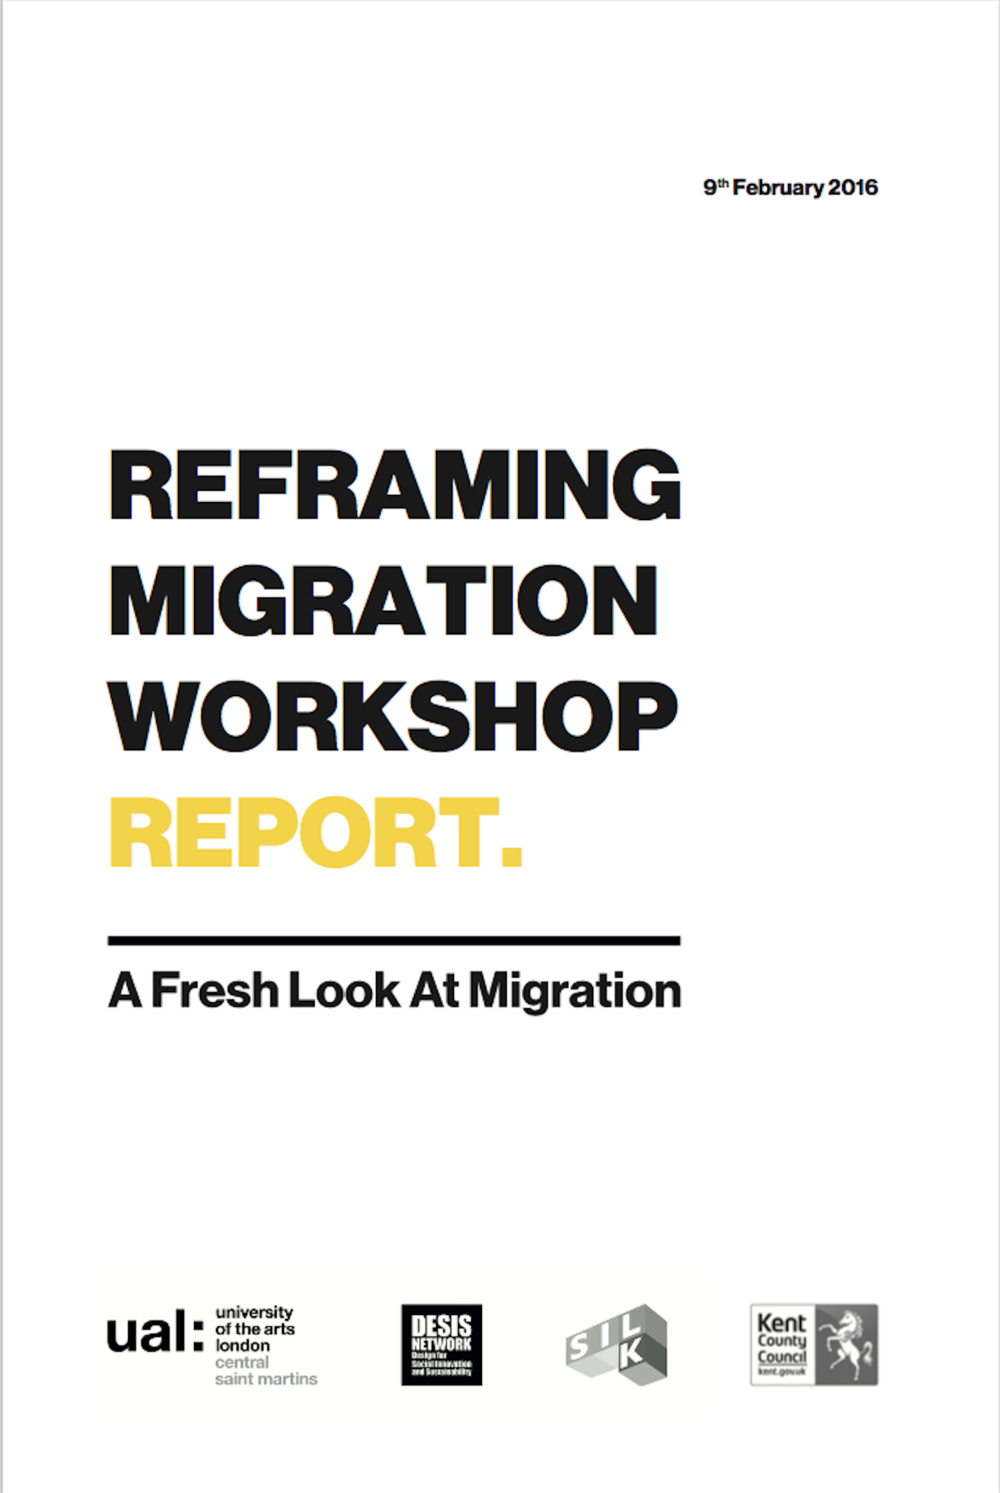 reframing-migration-workshop-report-2016-cover.png